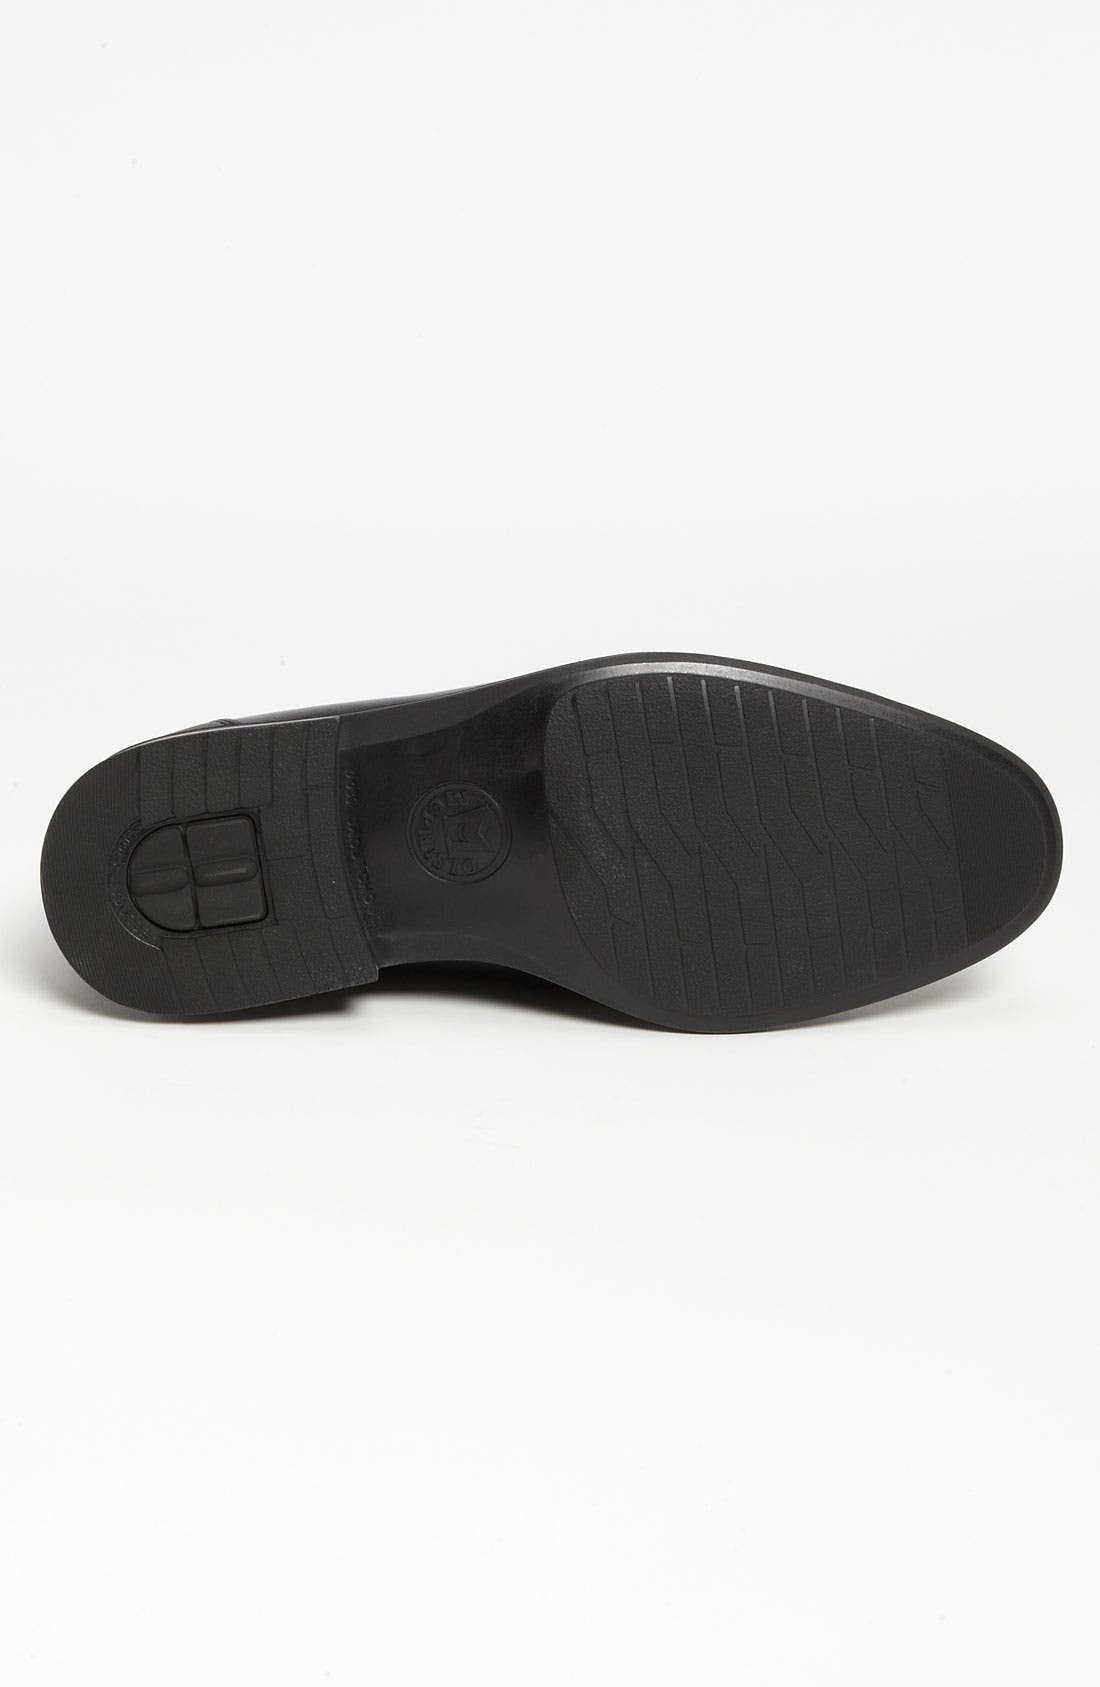 Fortino Loafer,                             Alternate thumbnail 4, color,                             Black